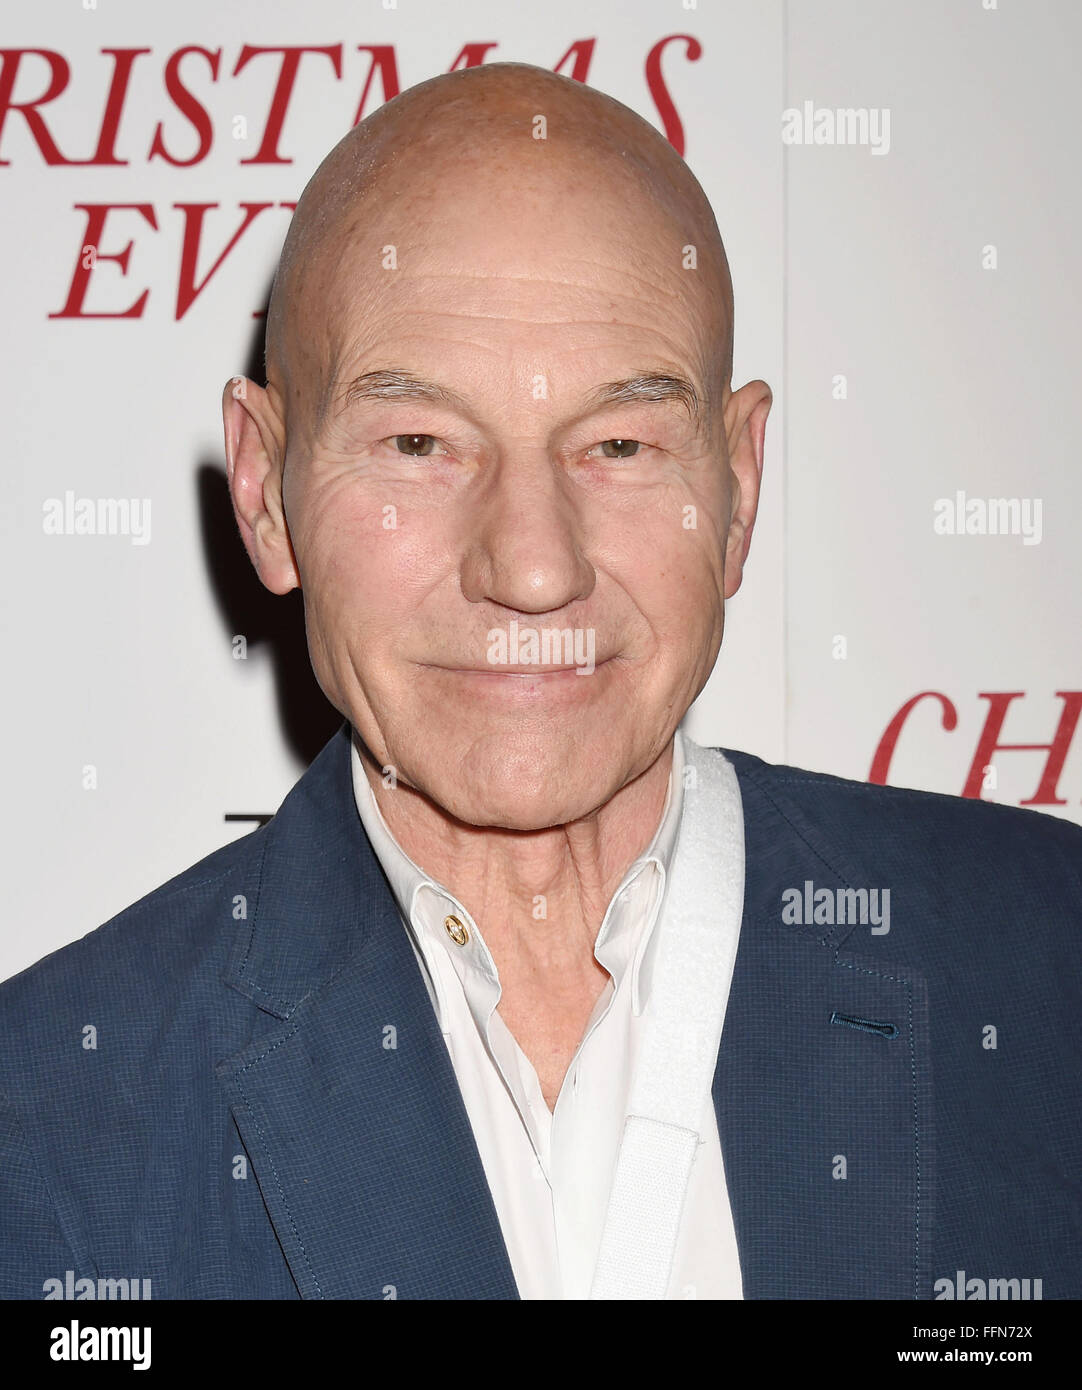 Actor Patrick Stewart arrives at the premiere of Unstuck's 'Christmas Eve' at the ArcLight Hollywood - Stock Image